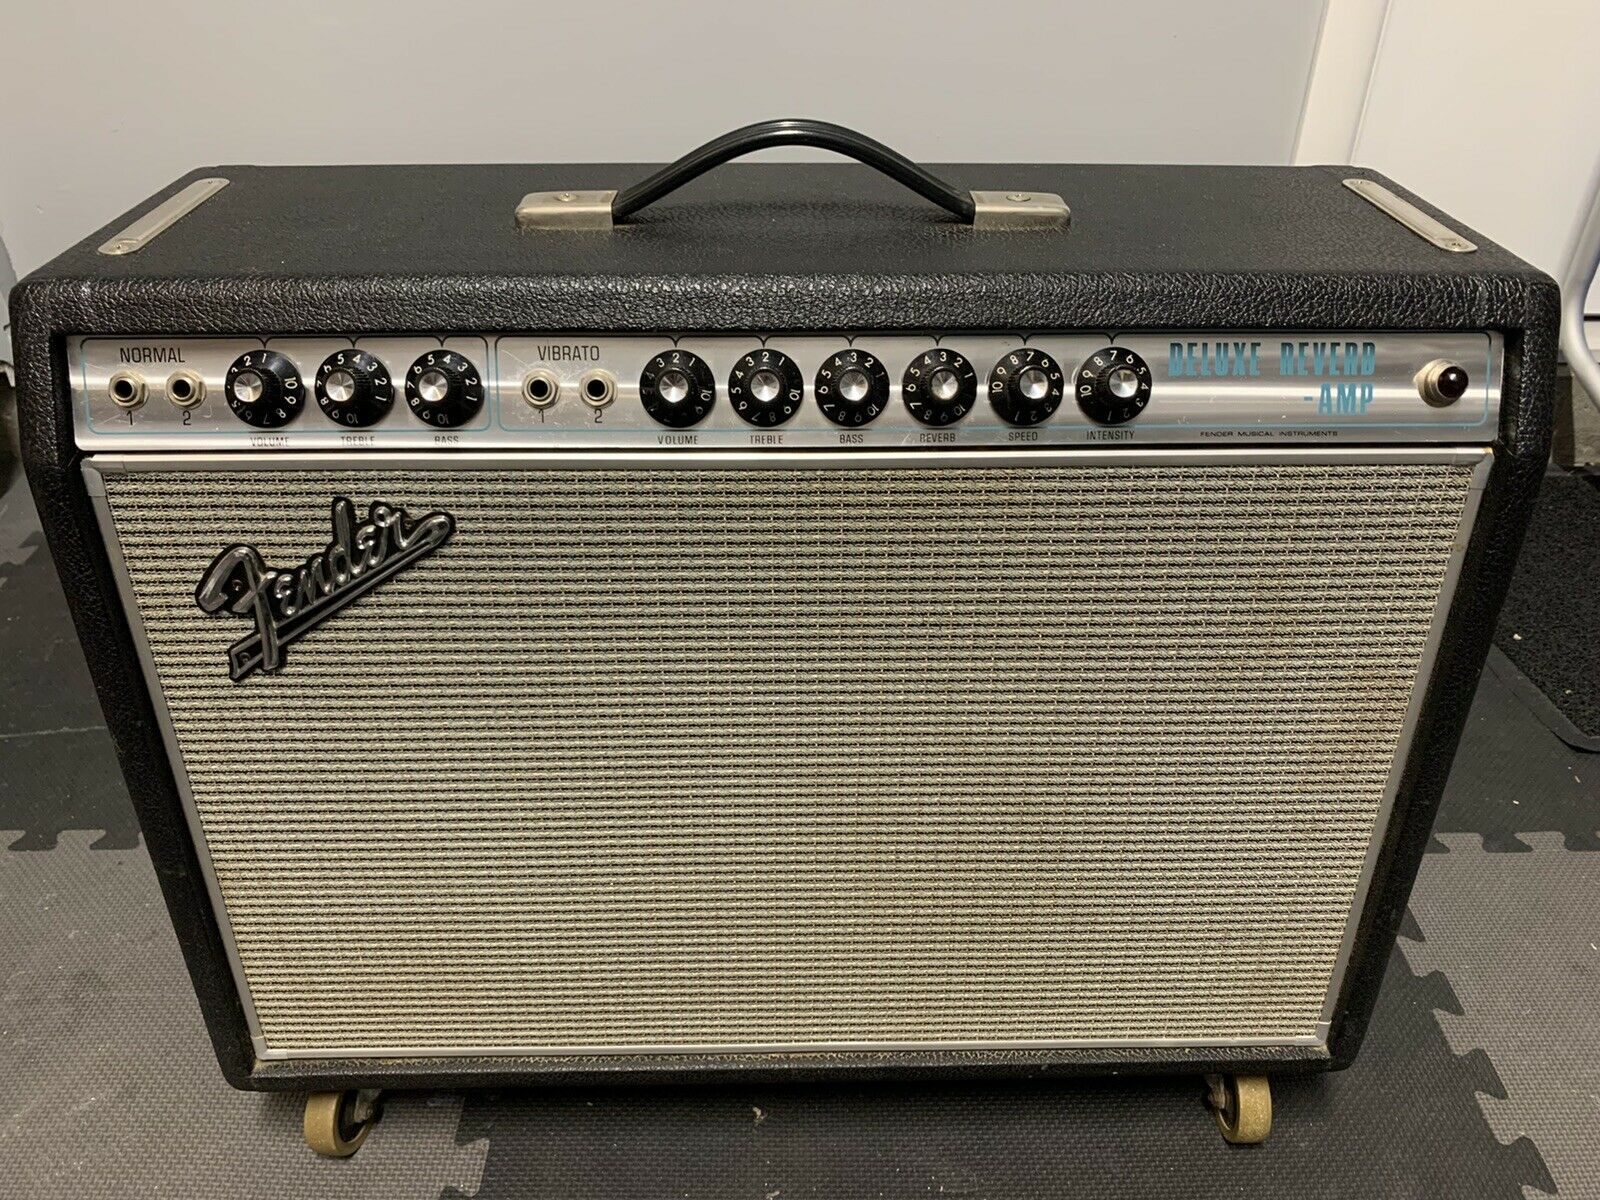 fender deluxe reverb amplifier 1968 Vintage (Not A Reissue). Available Now for 3000.00